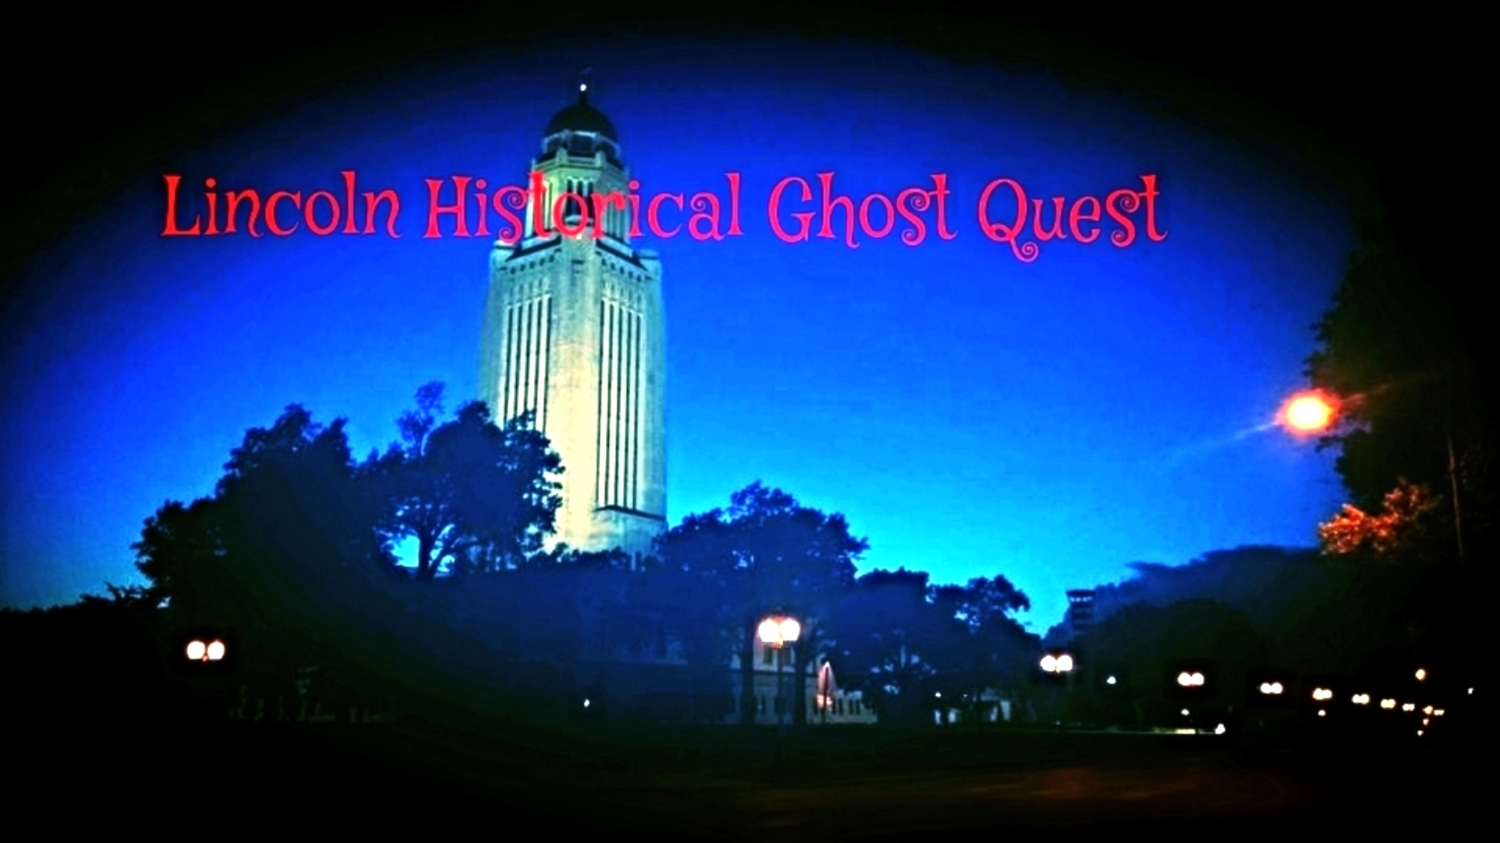 Lincoln Historical Ghost Quest